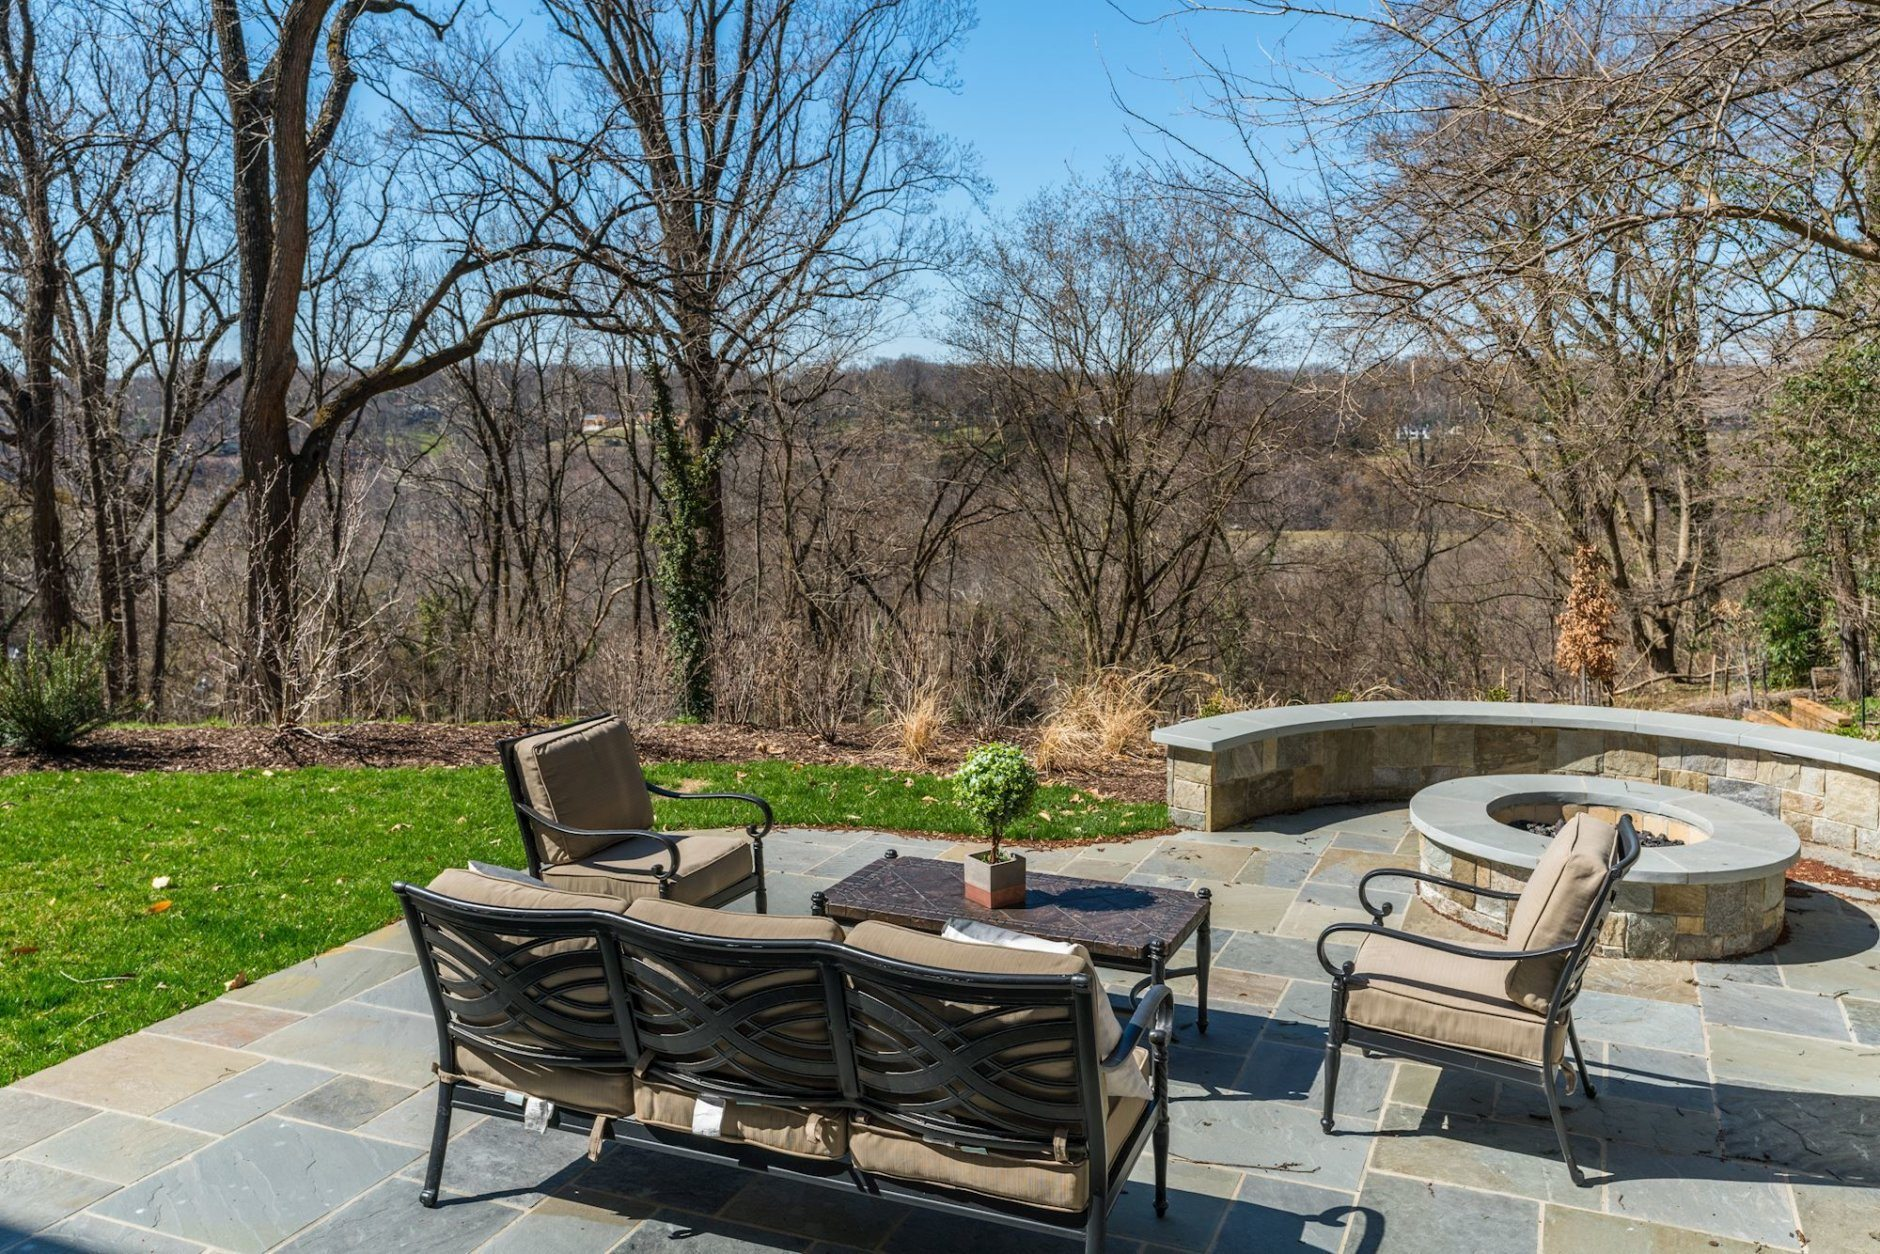 Sitting area and fire pit in the backyard. (Courtesy Wydler Brothers)